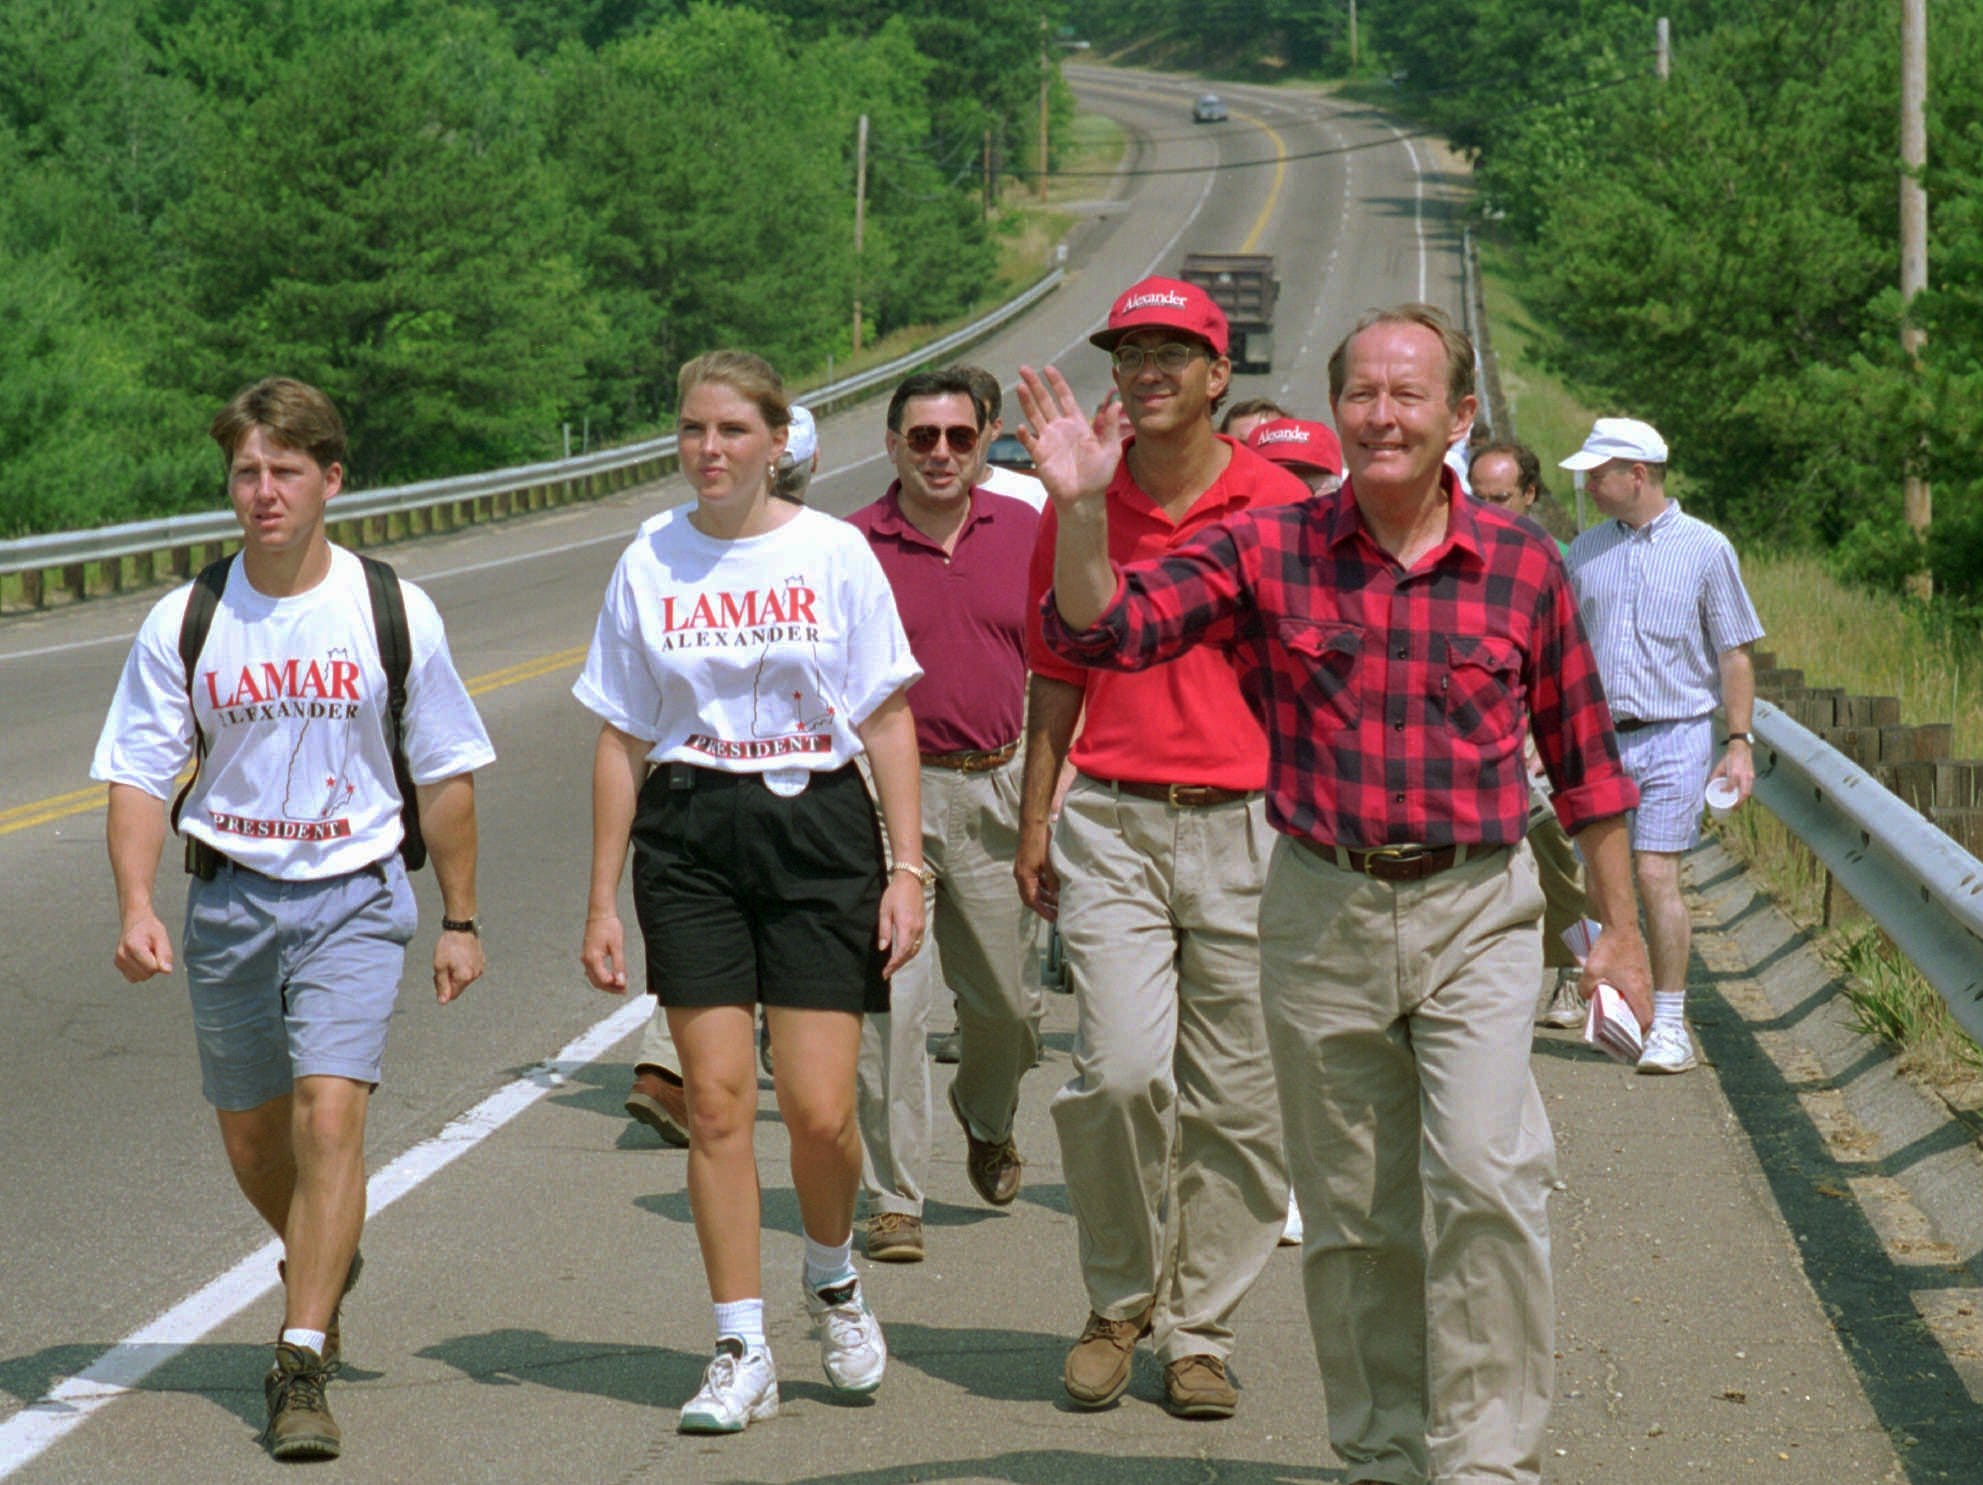 Republican presidential hopeful and former governor of Tennessee, Lamar Alexander, in the checkered shirt, waves to cars during the start of Alexander's 90 mile walk across the state in Concord, N.H., Thursday, July 6, 1995.  Alexander is hoping to pickup votes the old fashioned way.